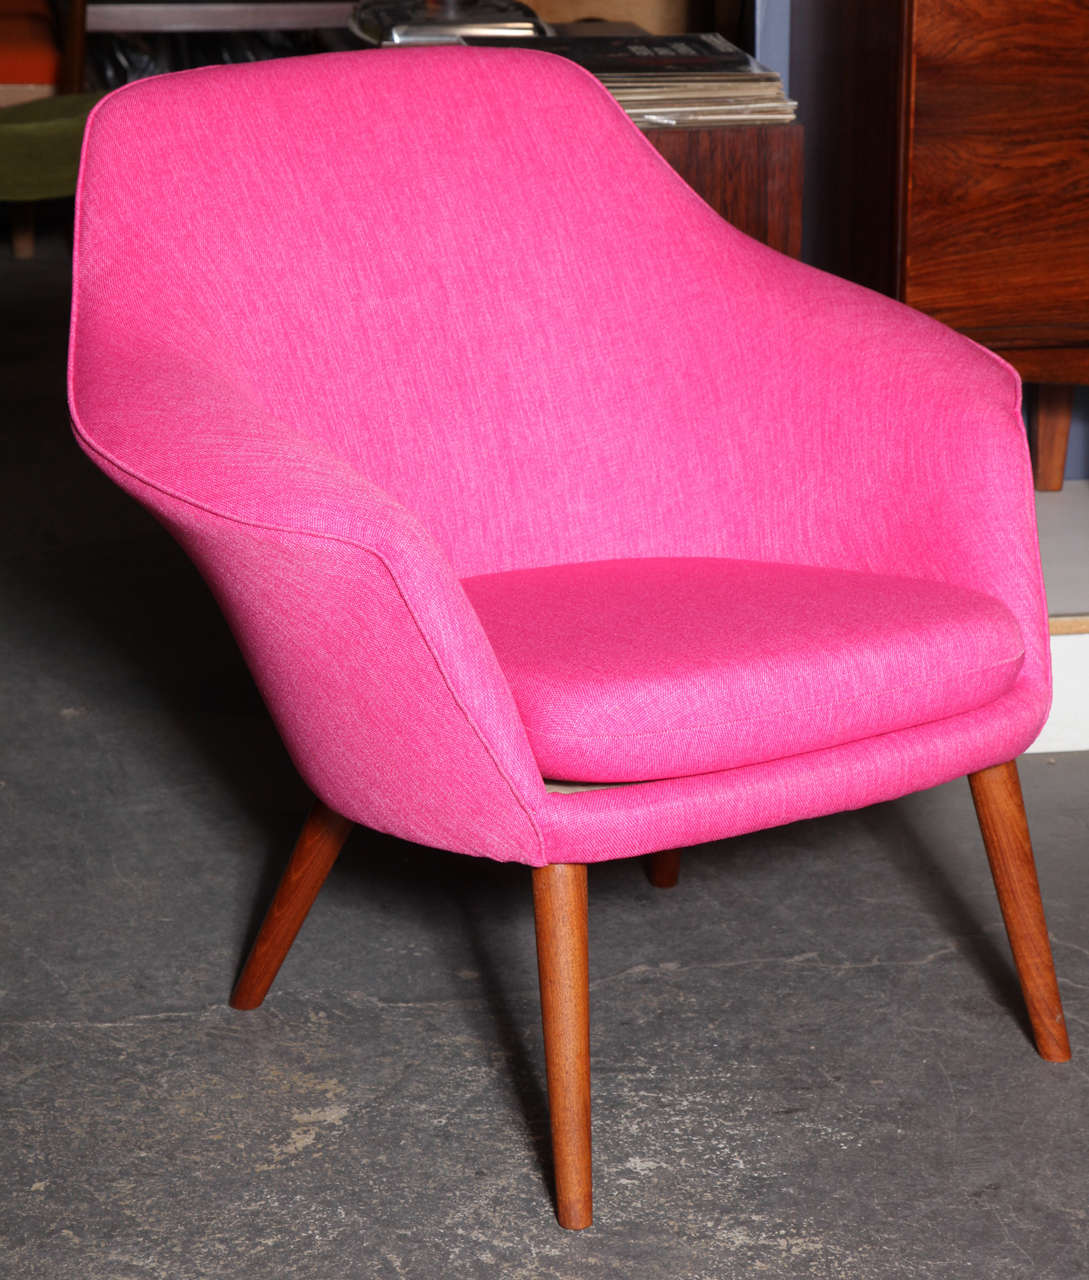 Pink Shell Or Womb Chair By Hans Olsen At 1stdibs